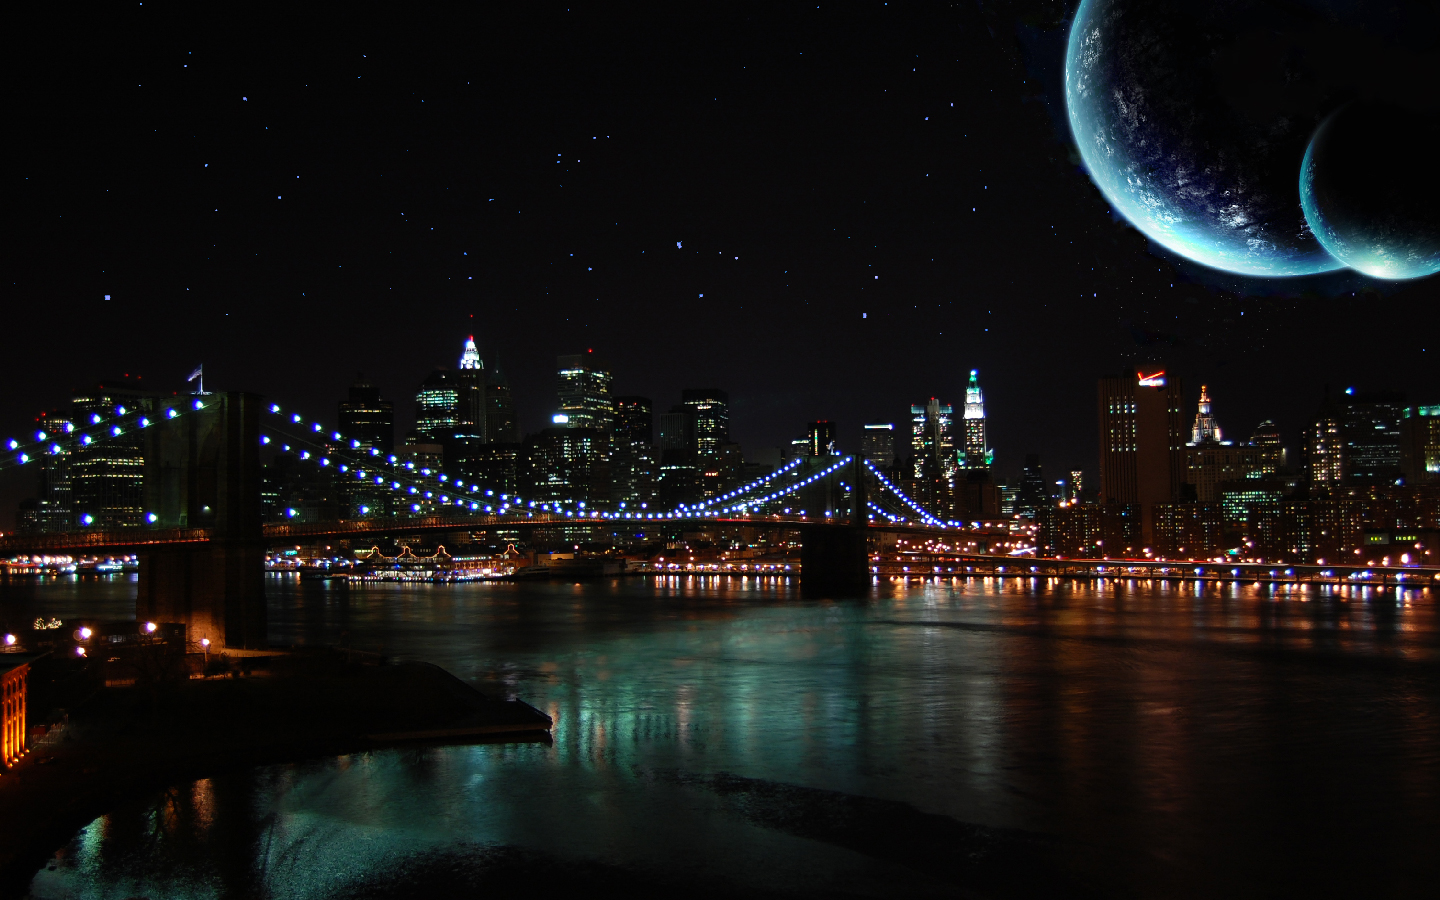 city night wallpaper hd - wallpapersafari